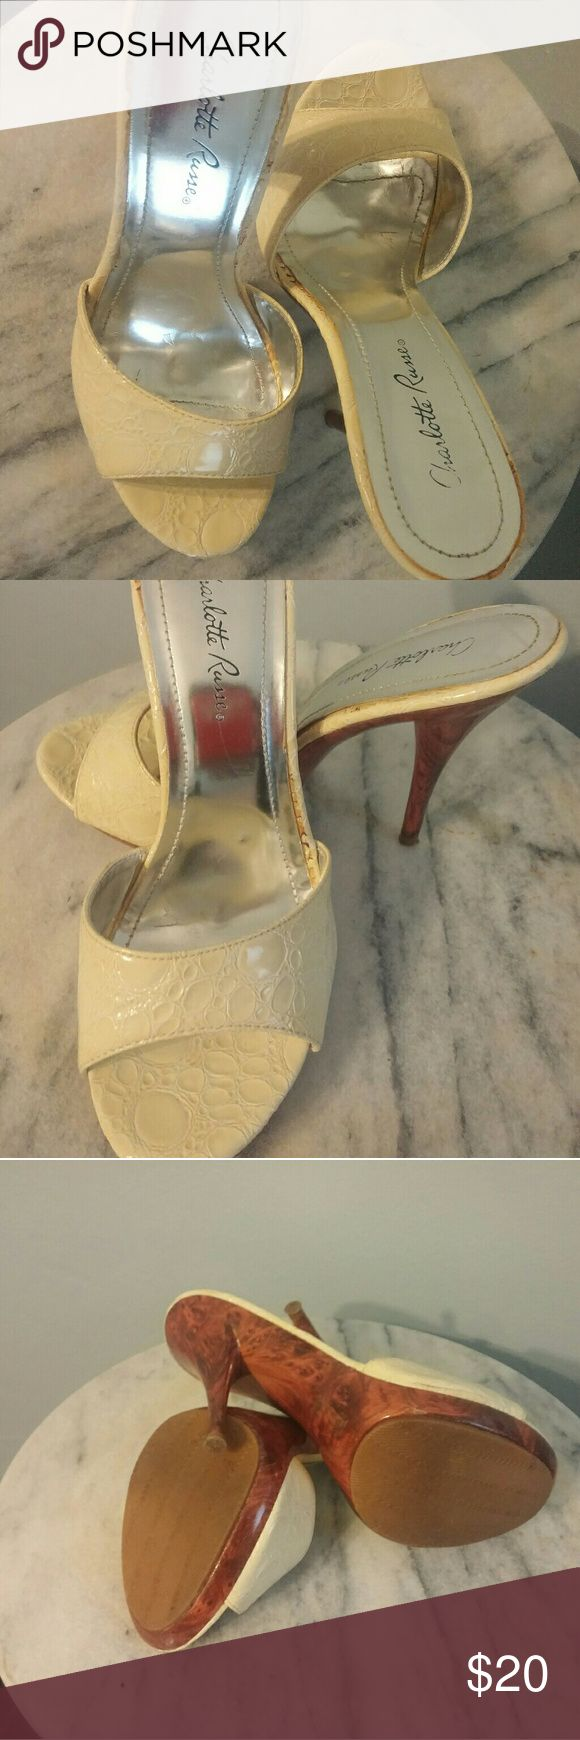 """Like New Charlotte Russe Slip-on Heels No visible signs of wear,  3"""" heels, woodgrain color. Very comfortable Charlotte Russe Shoes Mules & Clogs"""